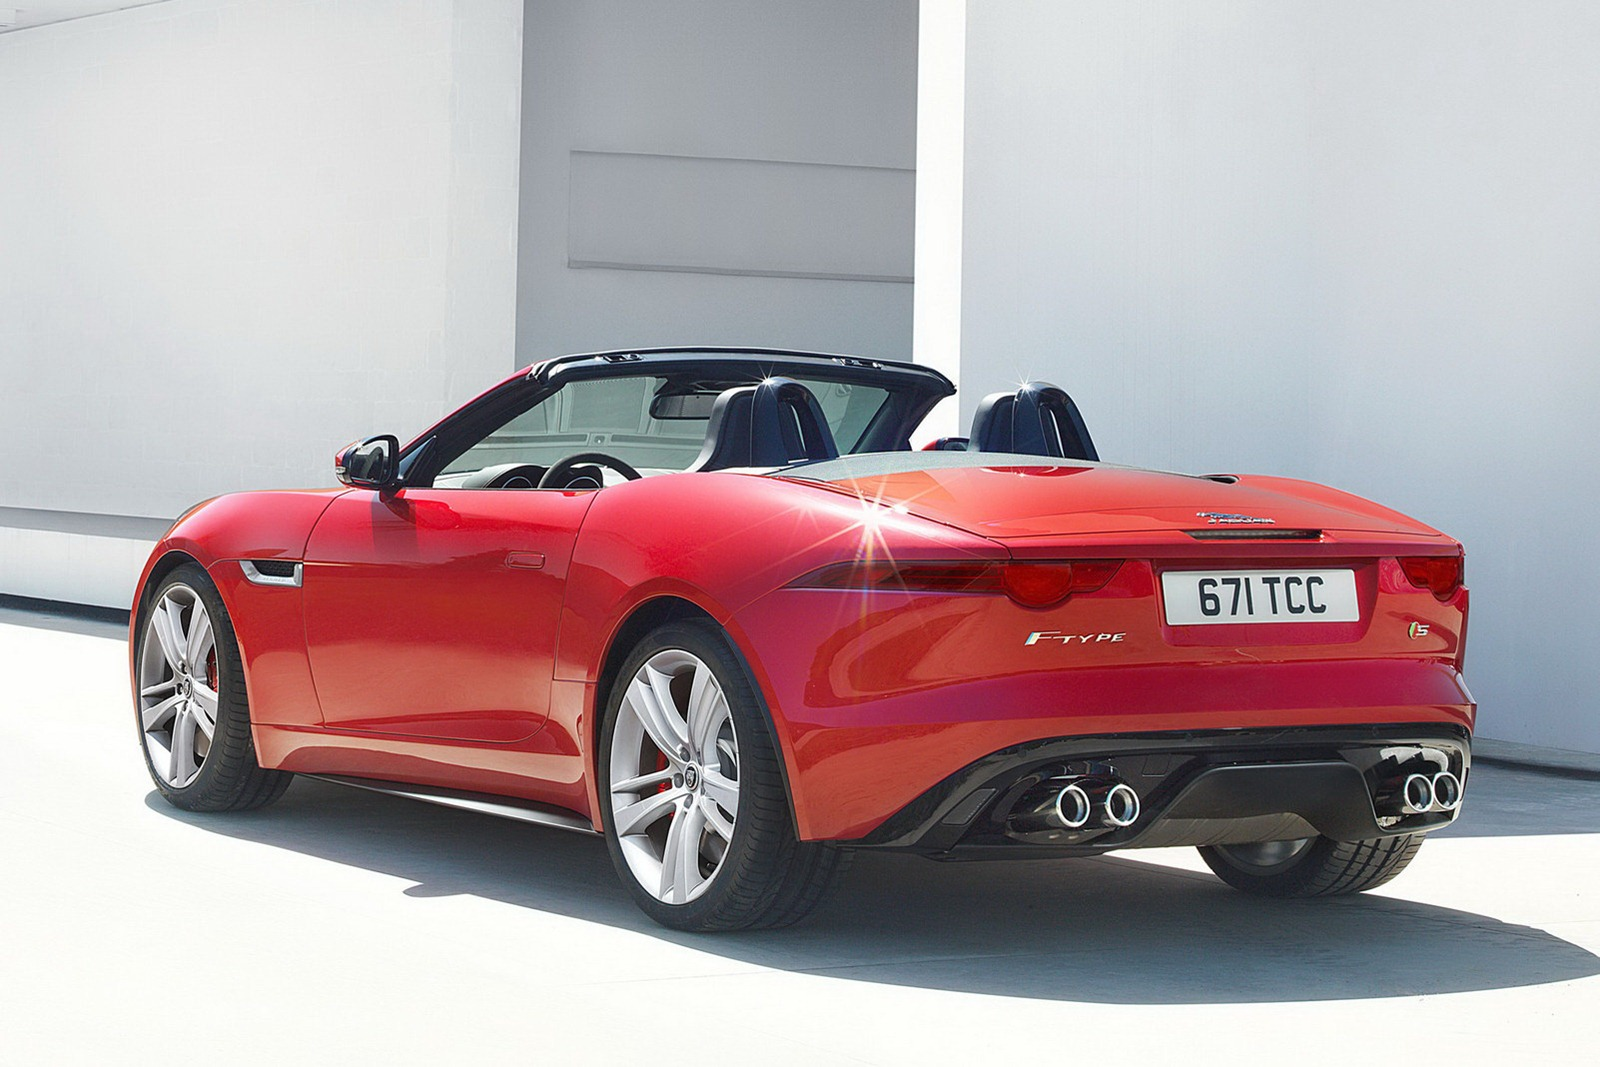 jaguar launches 2013 f type models at the paris motor show. Black Bedroom Furniture Sets. Home Design Ideas